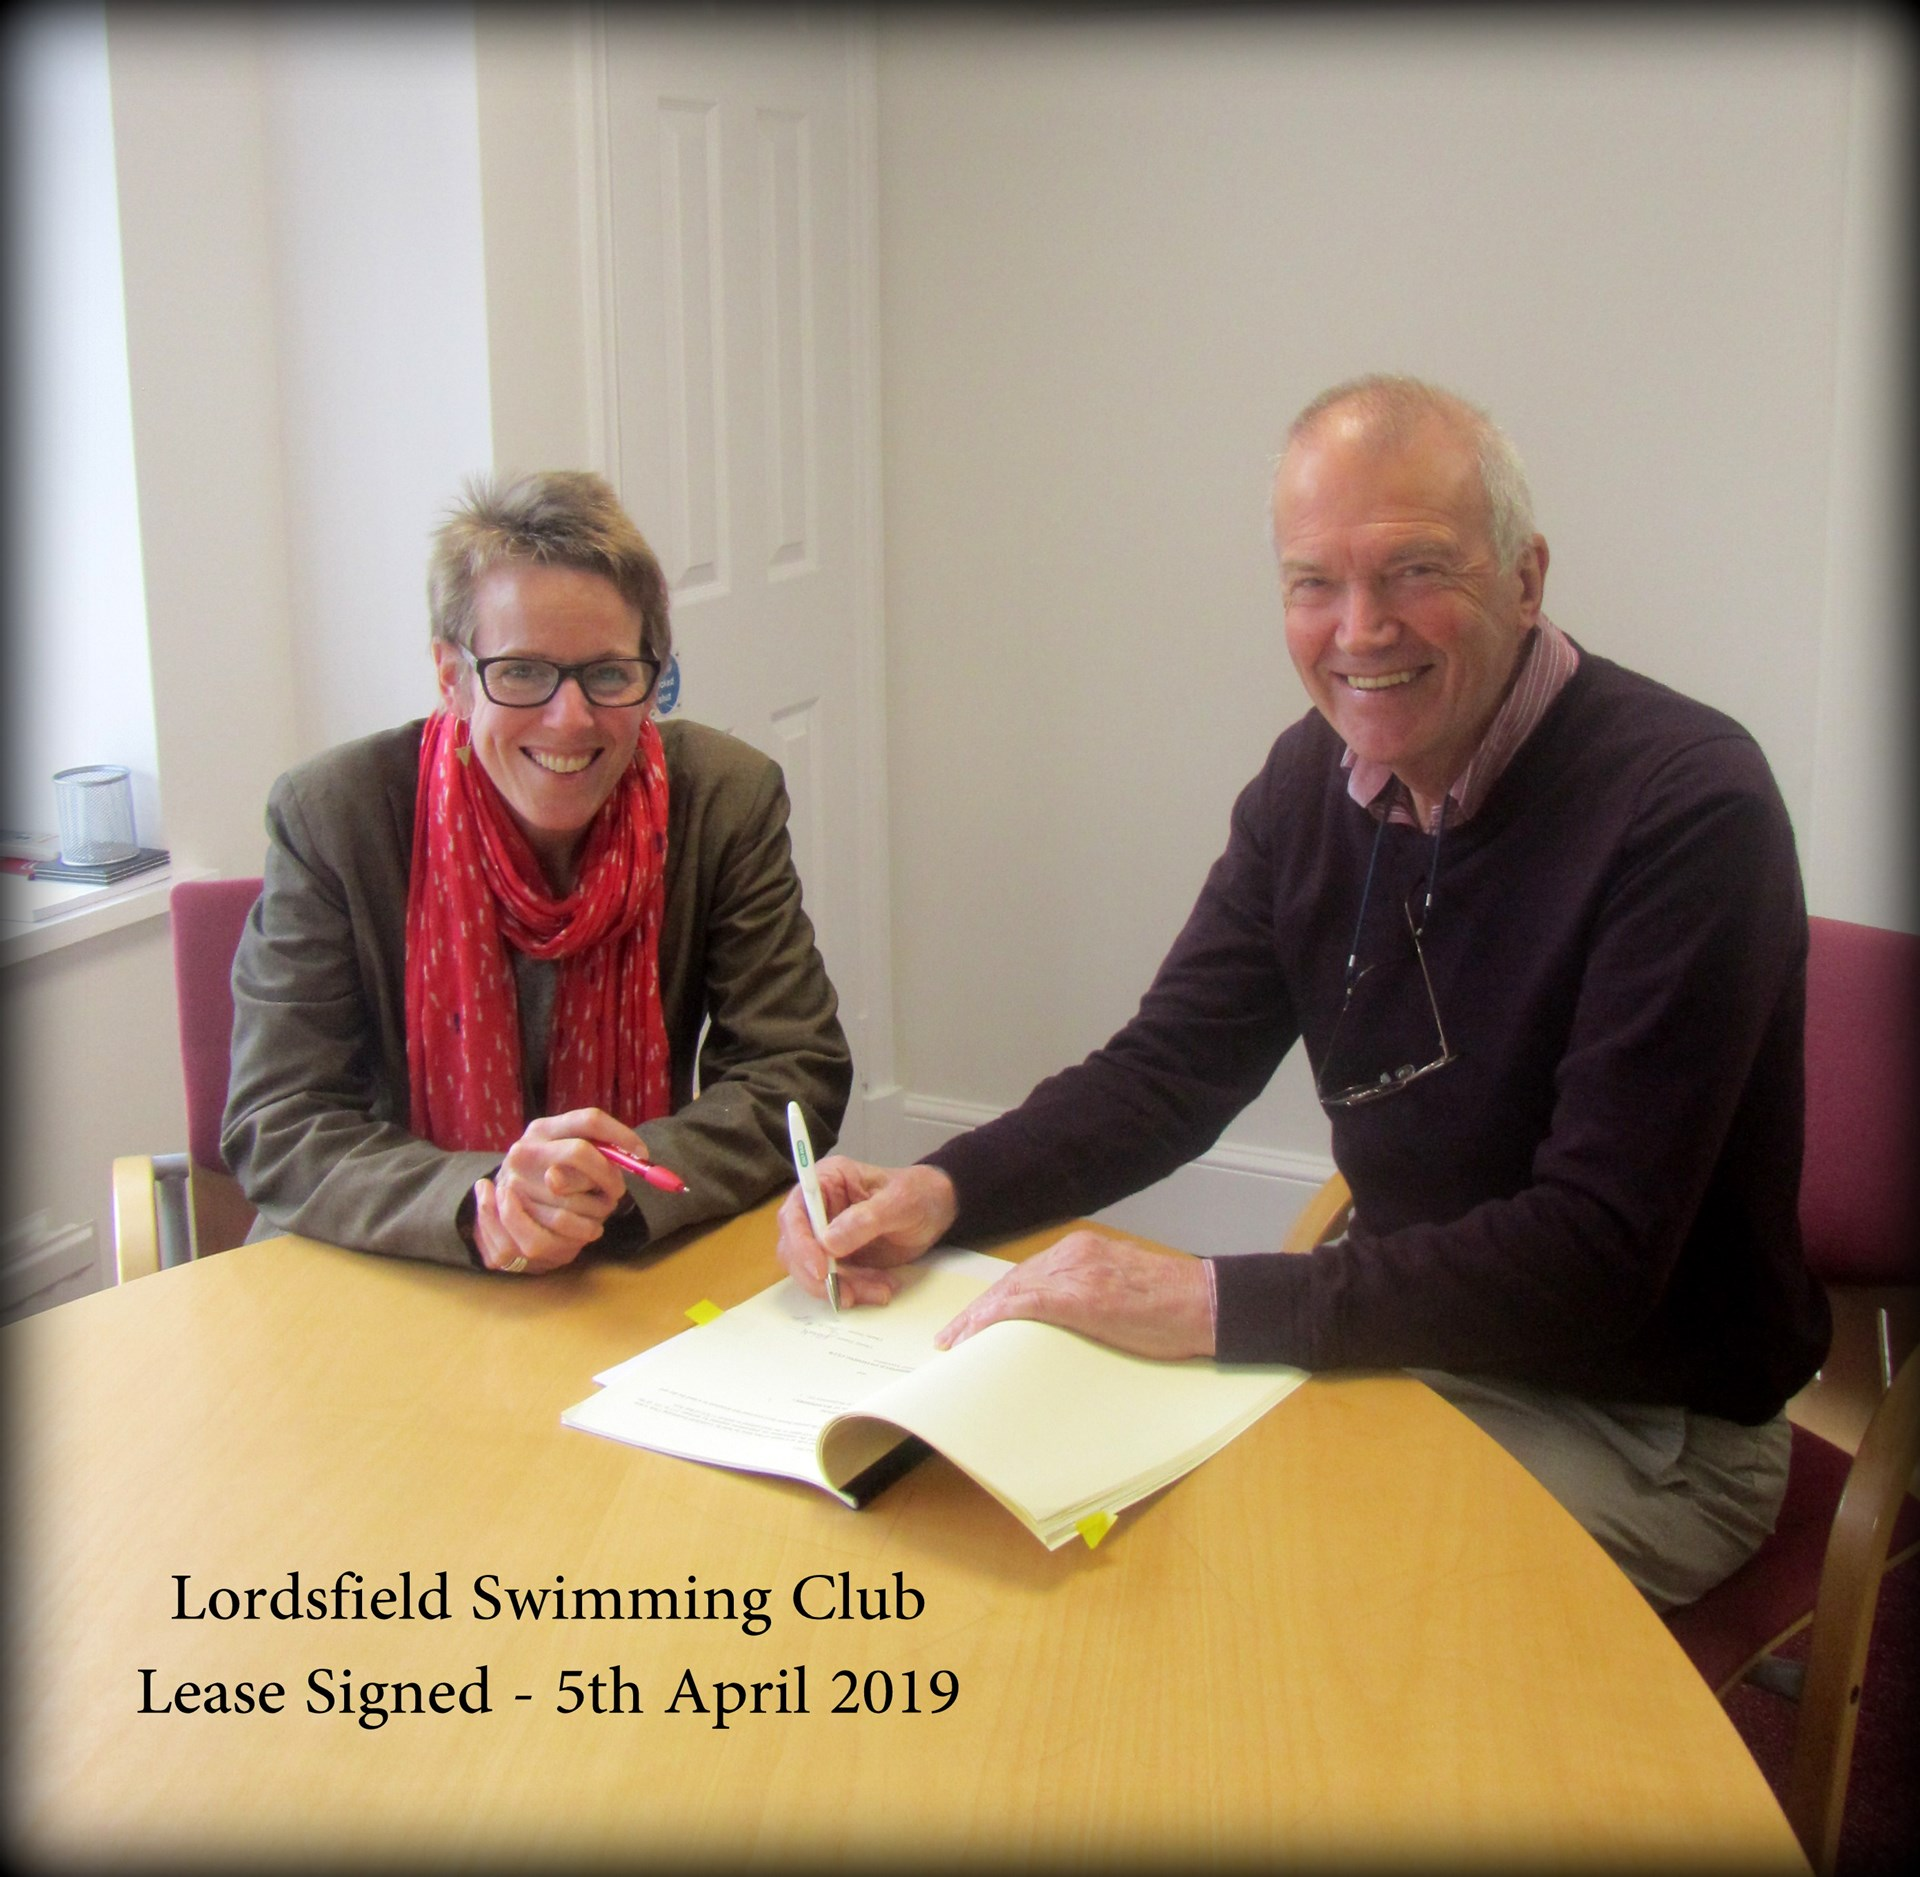 Tania Bridge & David Edwards signing the lease on the pool, 5 April 2019